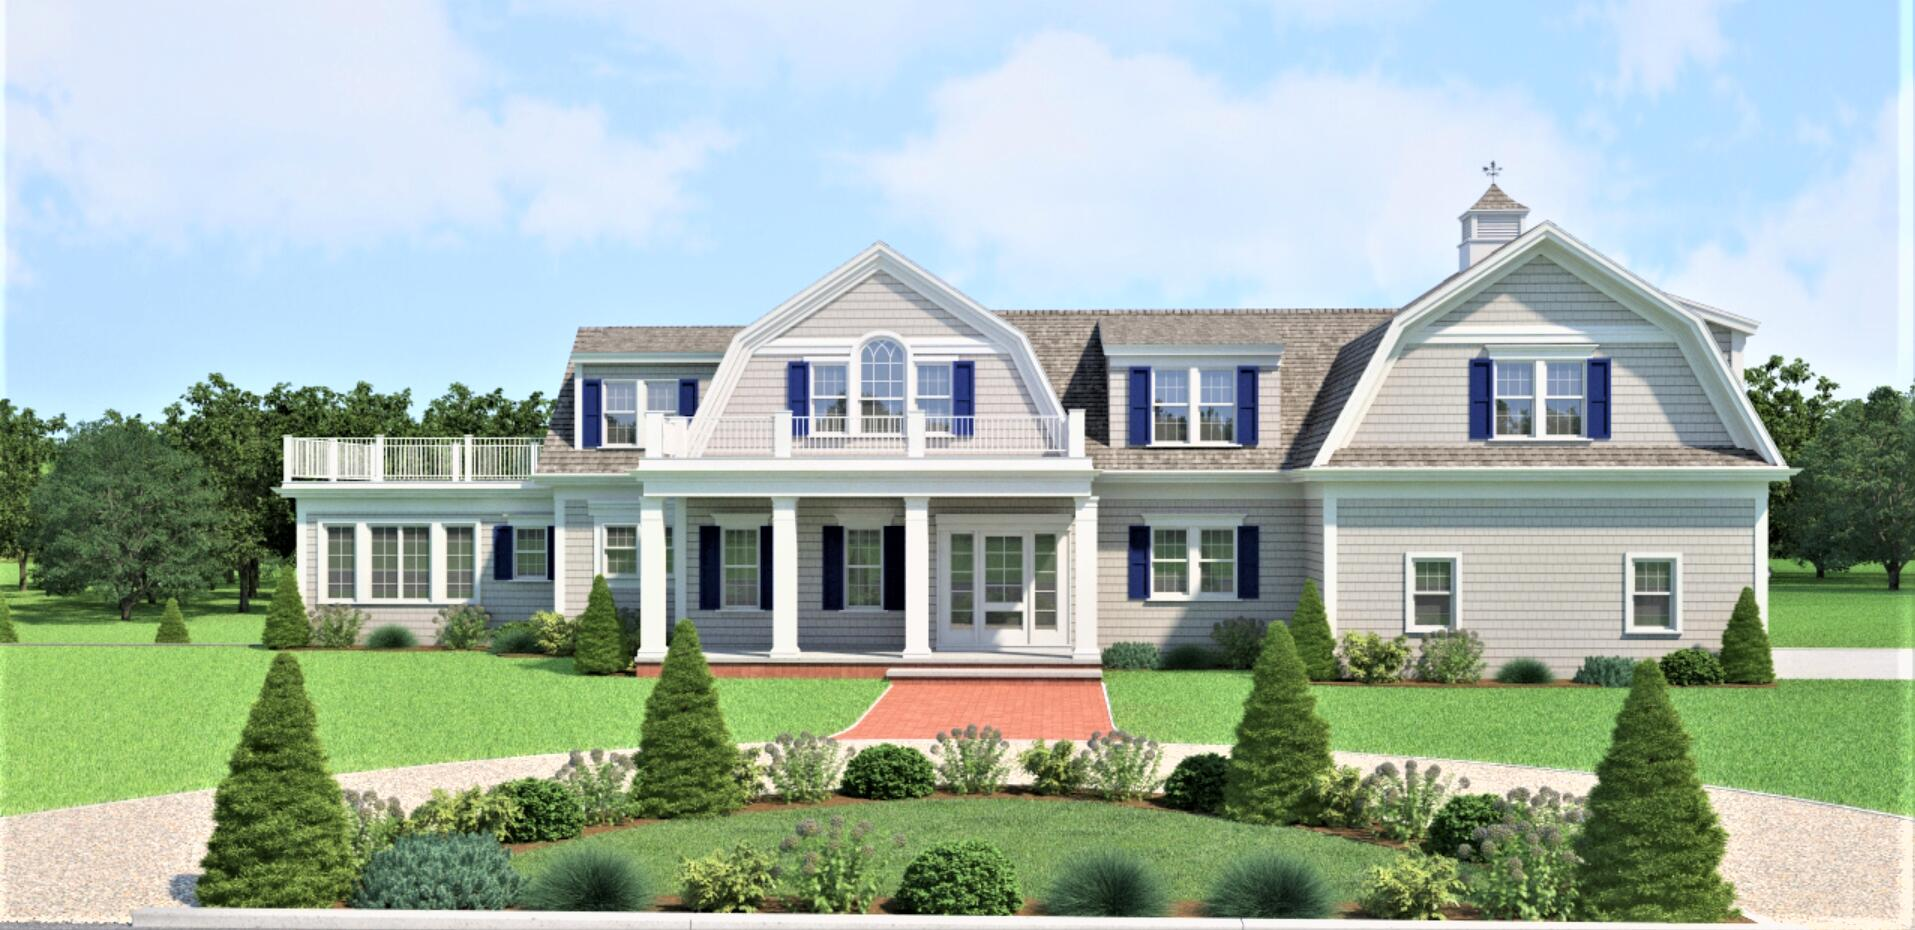 click to view more details 17 Grandview Drive, Orleans, MA 02653